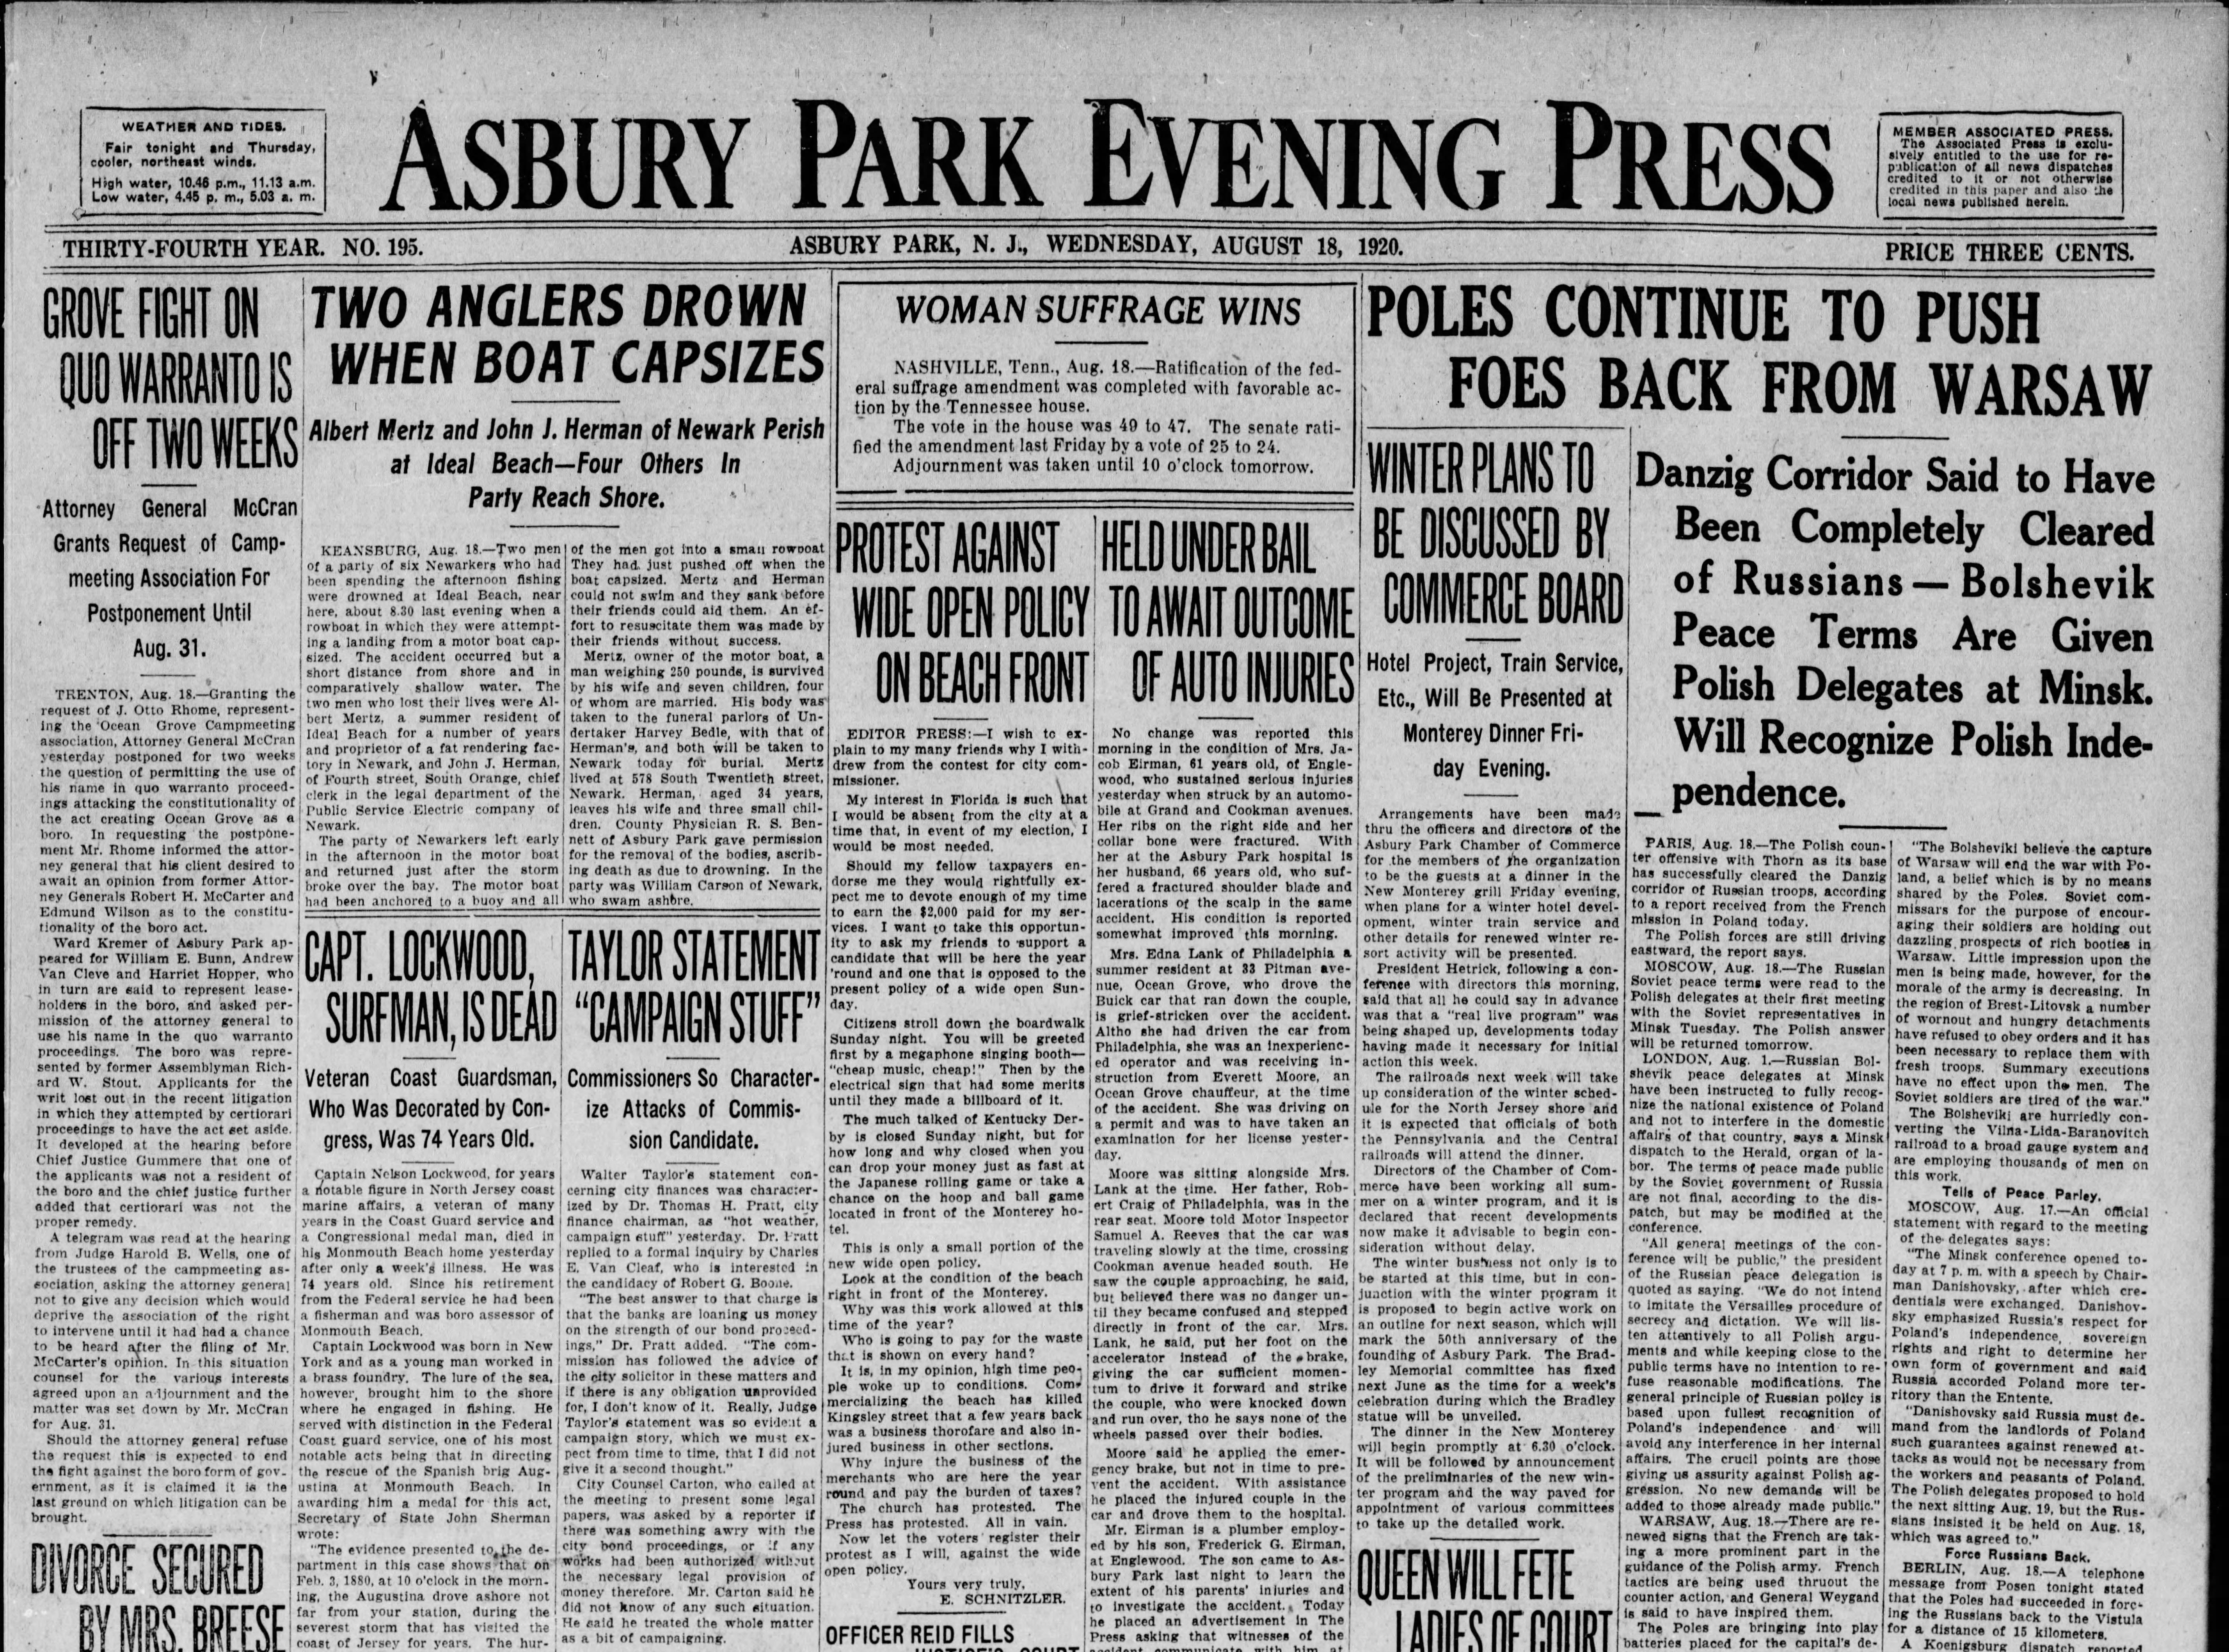 Ratification of the 19th amendment to the U.S. Constitution, giving women the right to vote, gets a prominent albeit condensed place on the front page of the Asbury Park Press on Wednesday, Aug. 18, 1920.